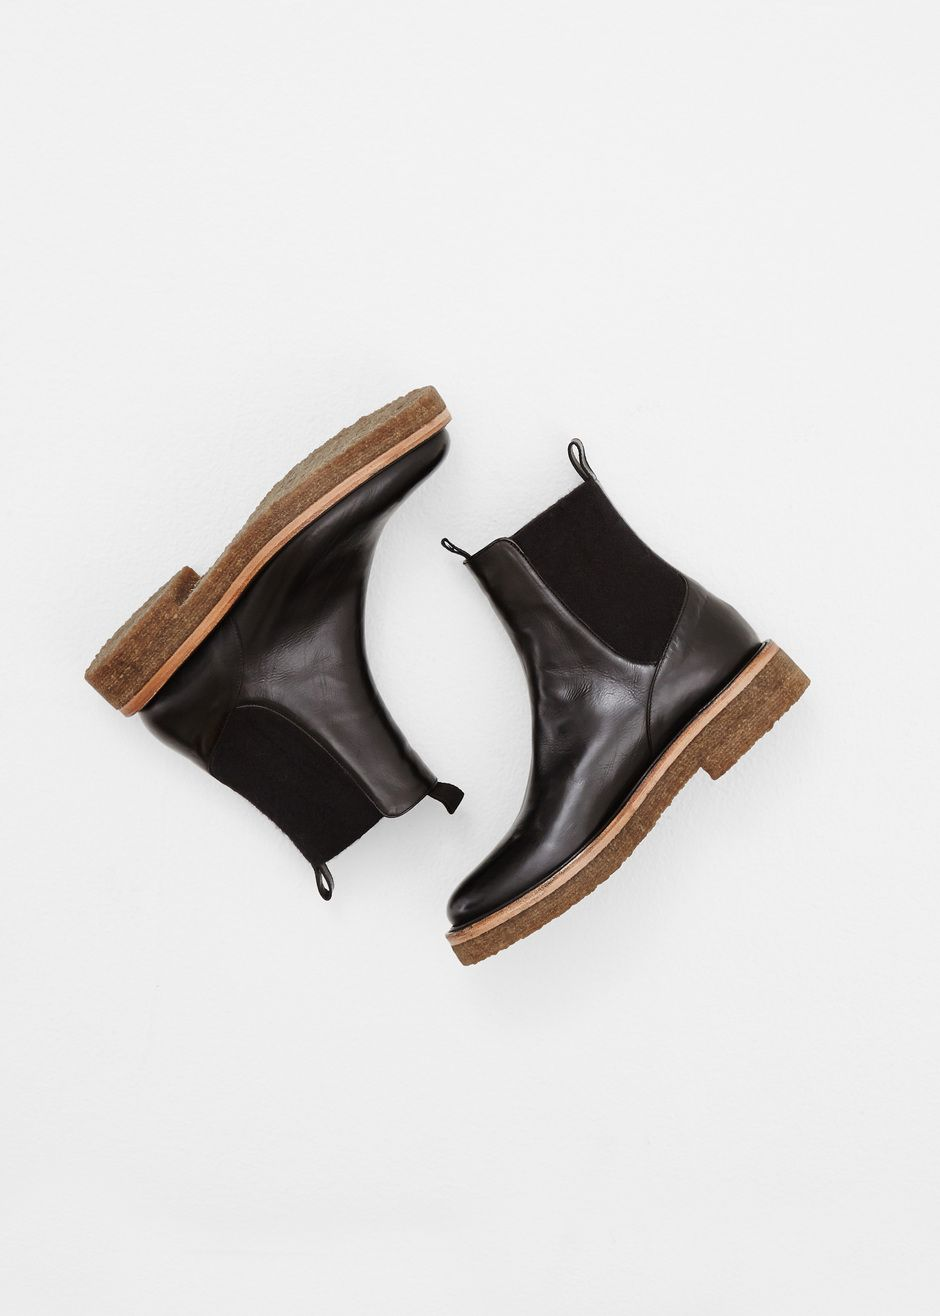 Dries Van Noten Flat Ankle Boot (Black) | nice kicks | Pinterest ...